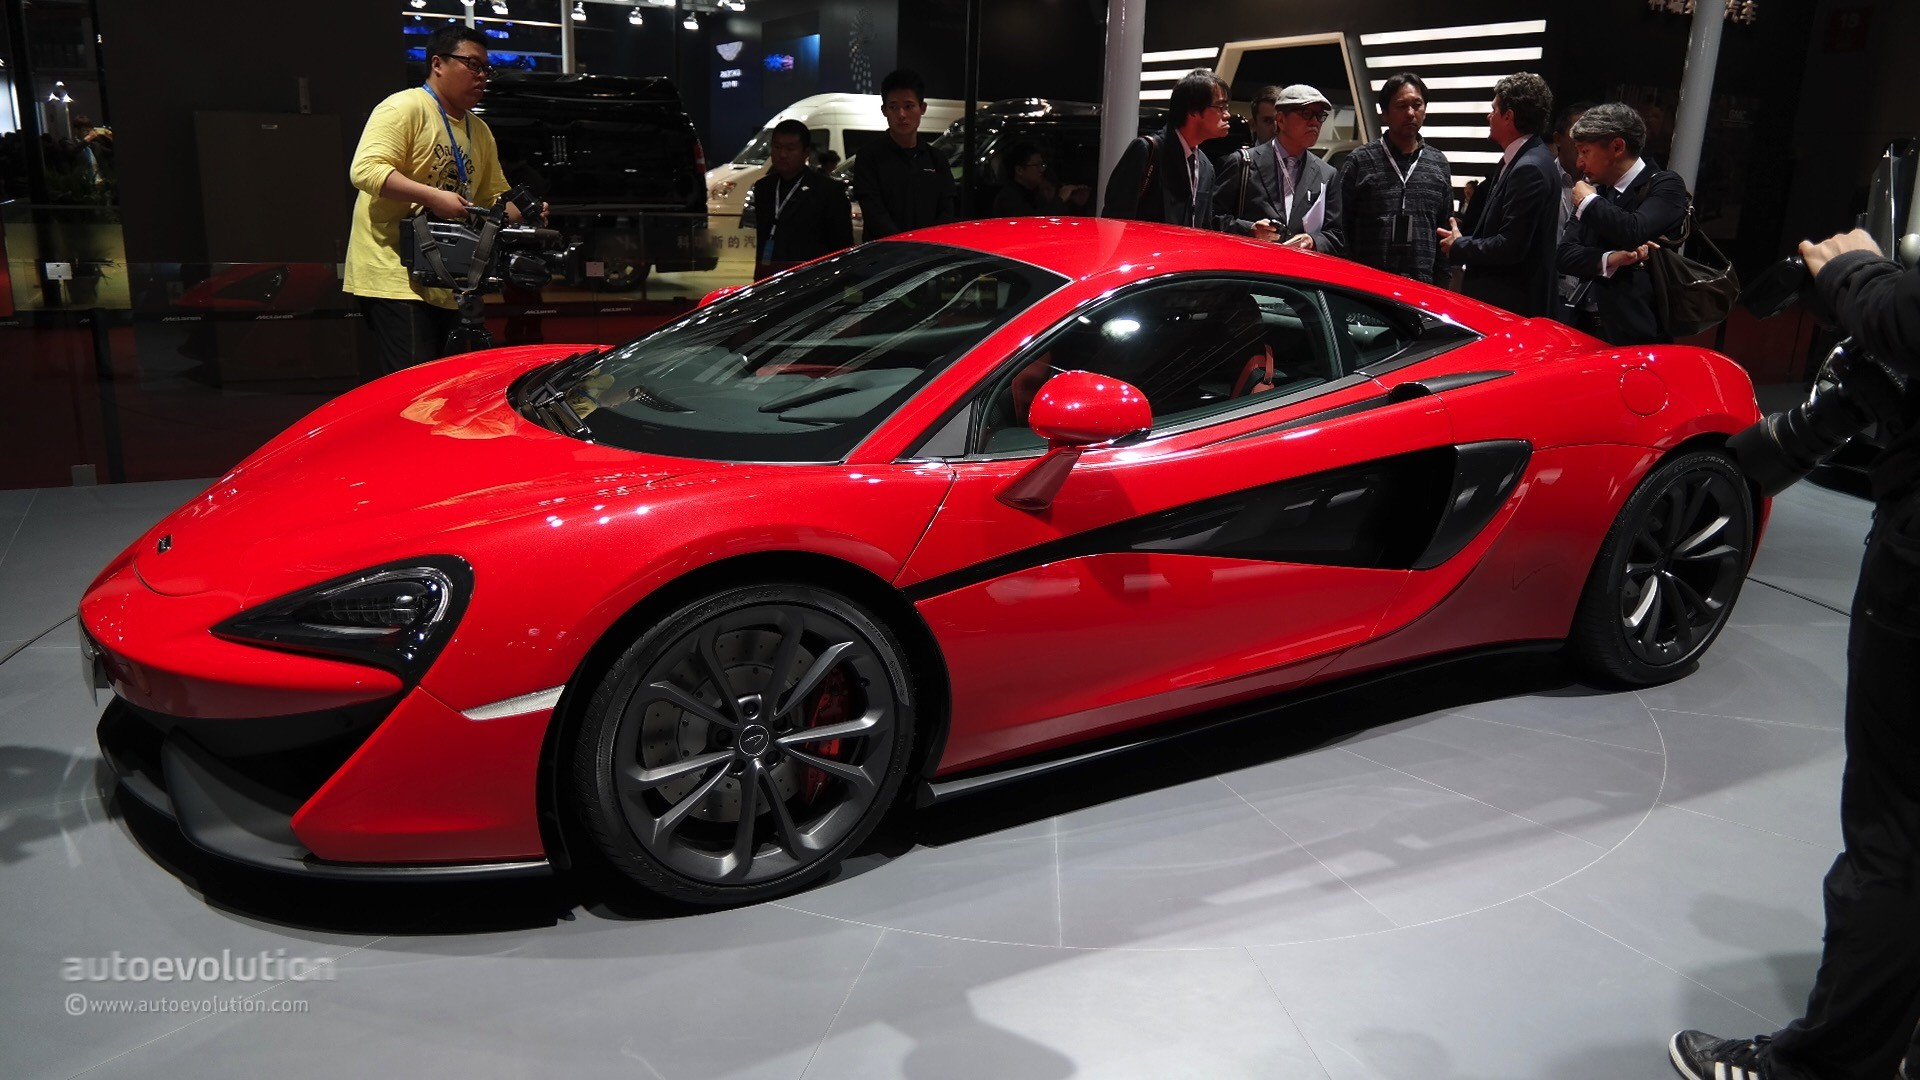 2016 mclaren 540c launched in shanghai as the cheapest model ever made autoevolution. Black Bedroom Furniture Sets. Home Design Ideas